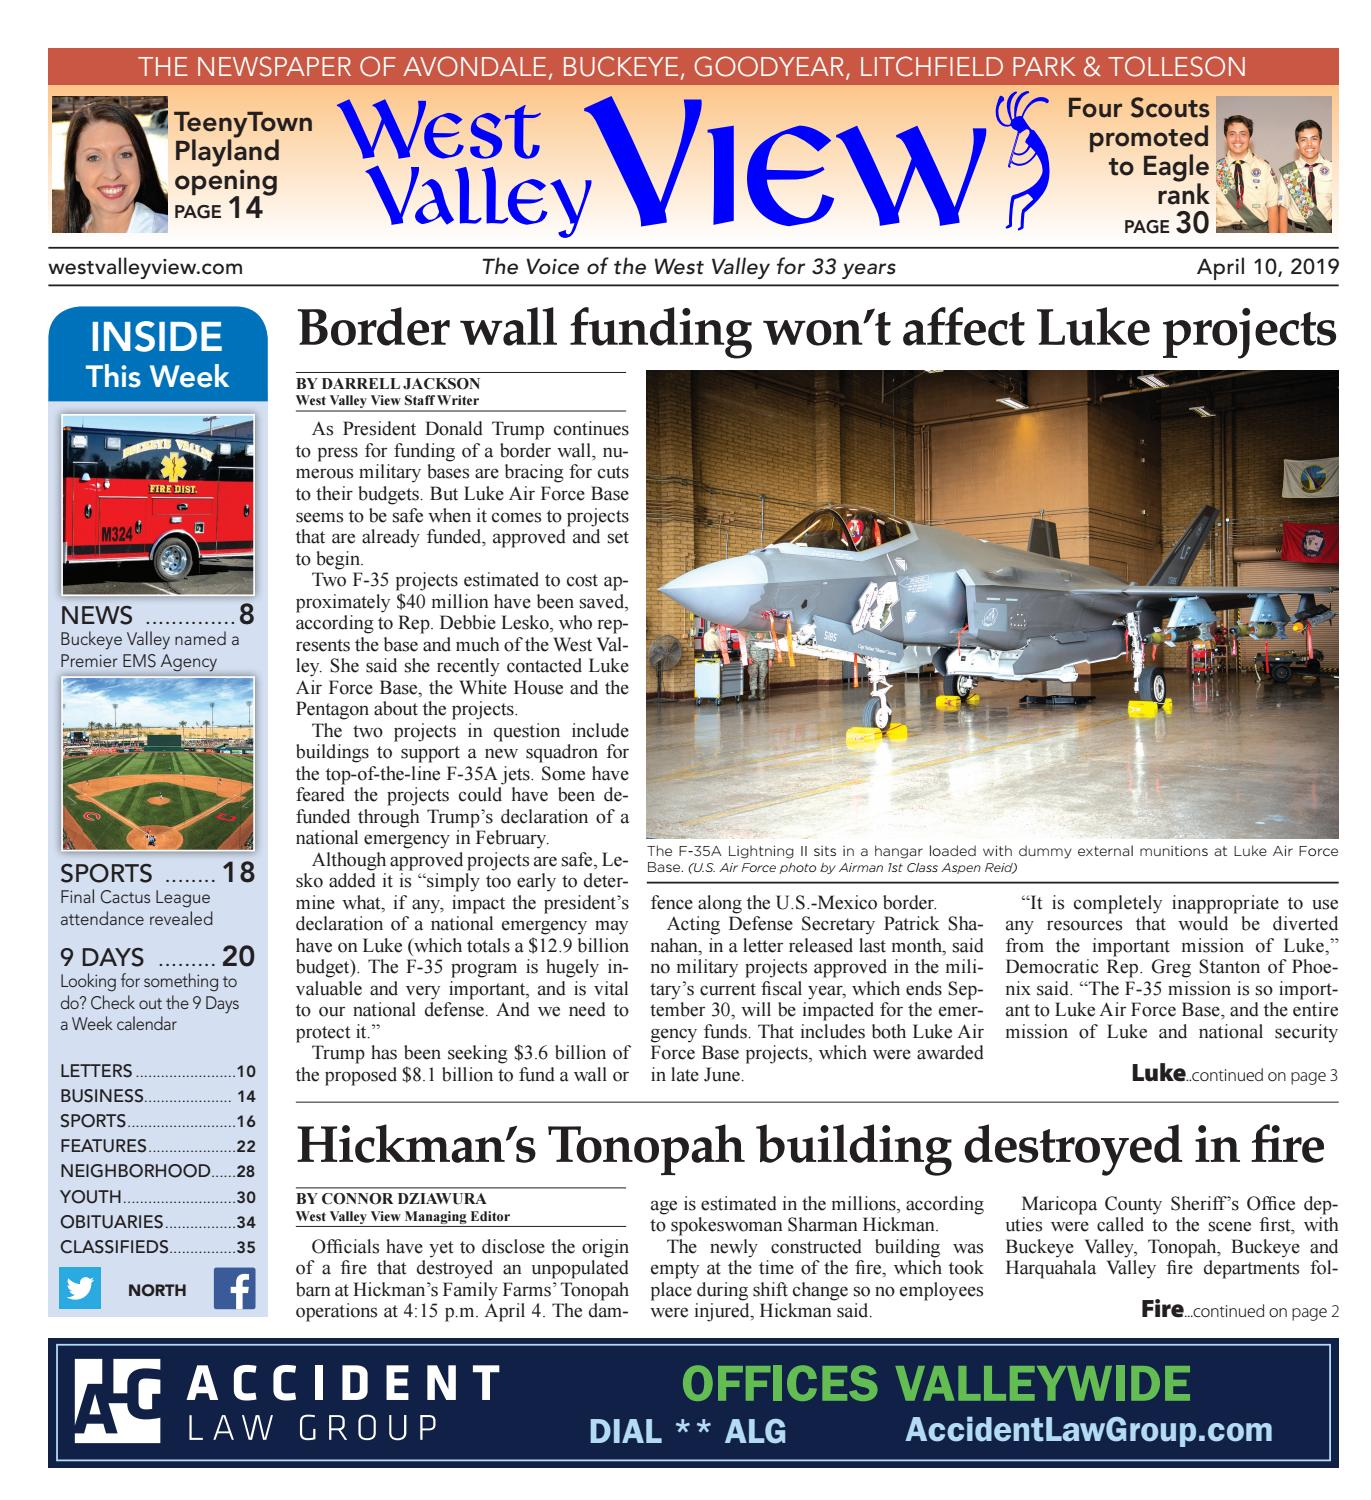 West Valley View: North 04-10-2019 by Times Media Group - issuu